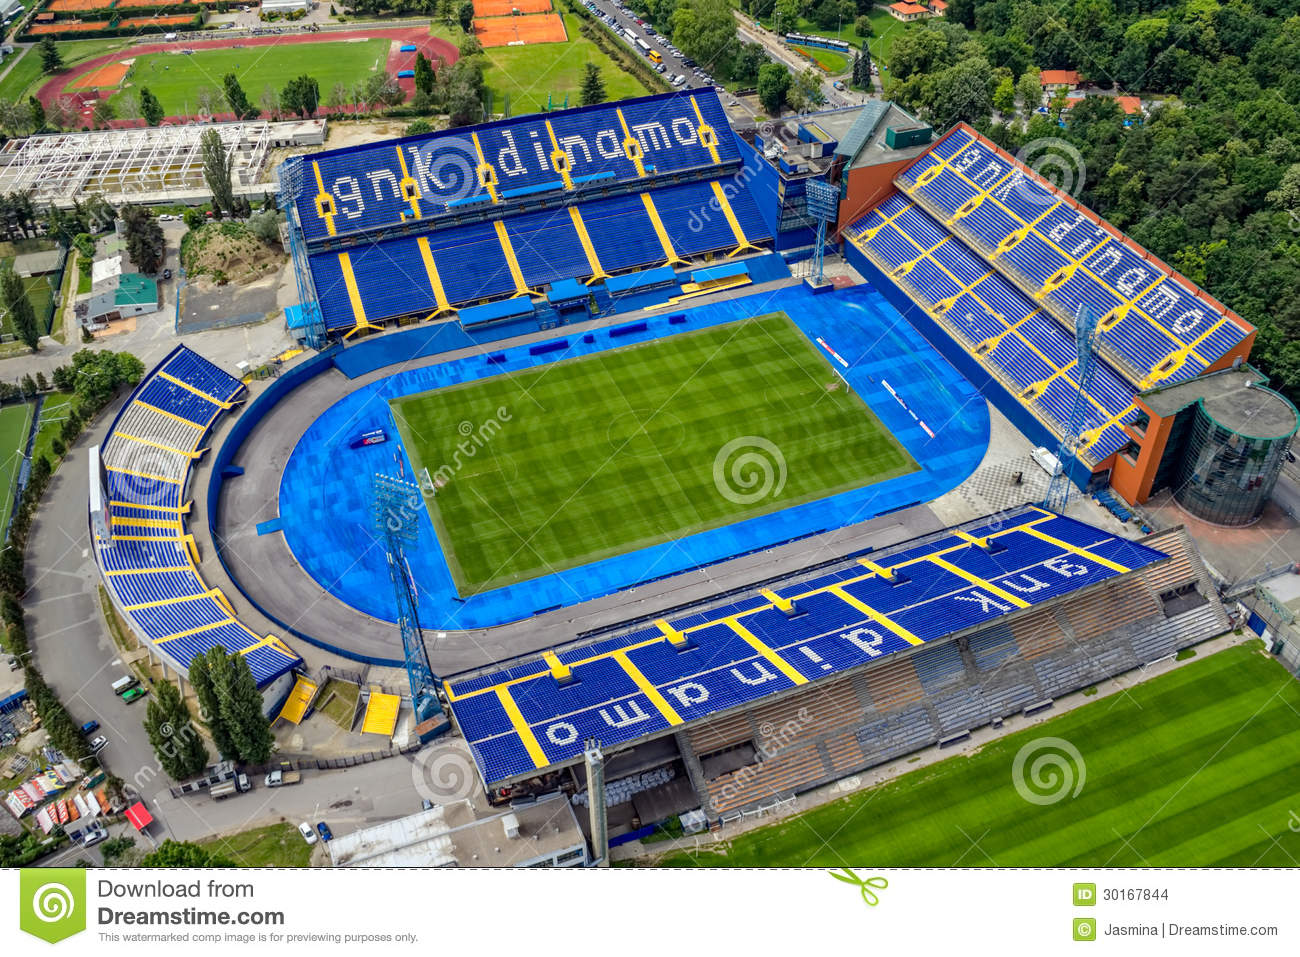 Maksimir Croatia  city photos gallery : ZAGREB, CROATIA MAY 26: Maksimir stadium is official field for ...